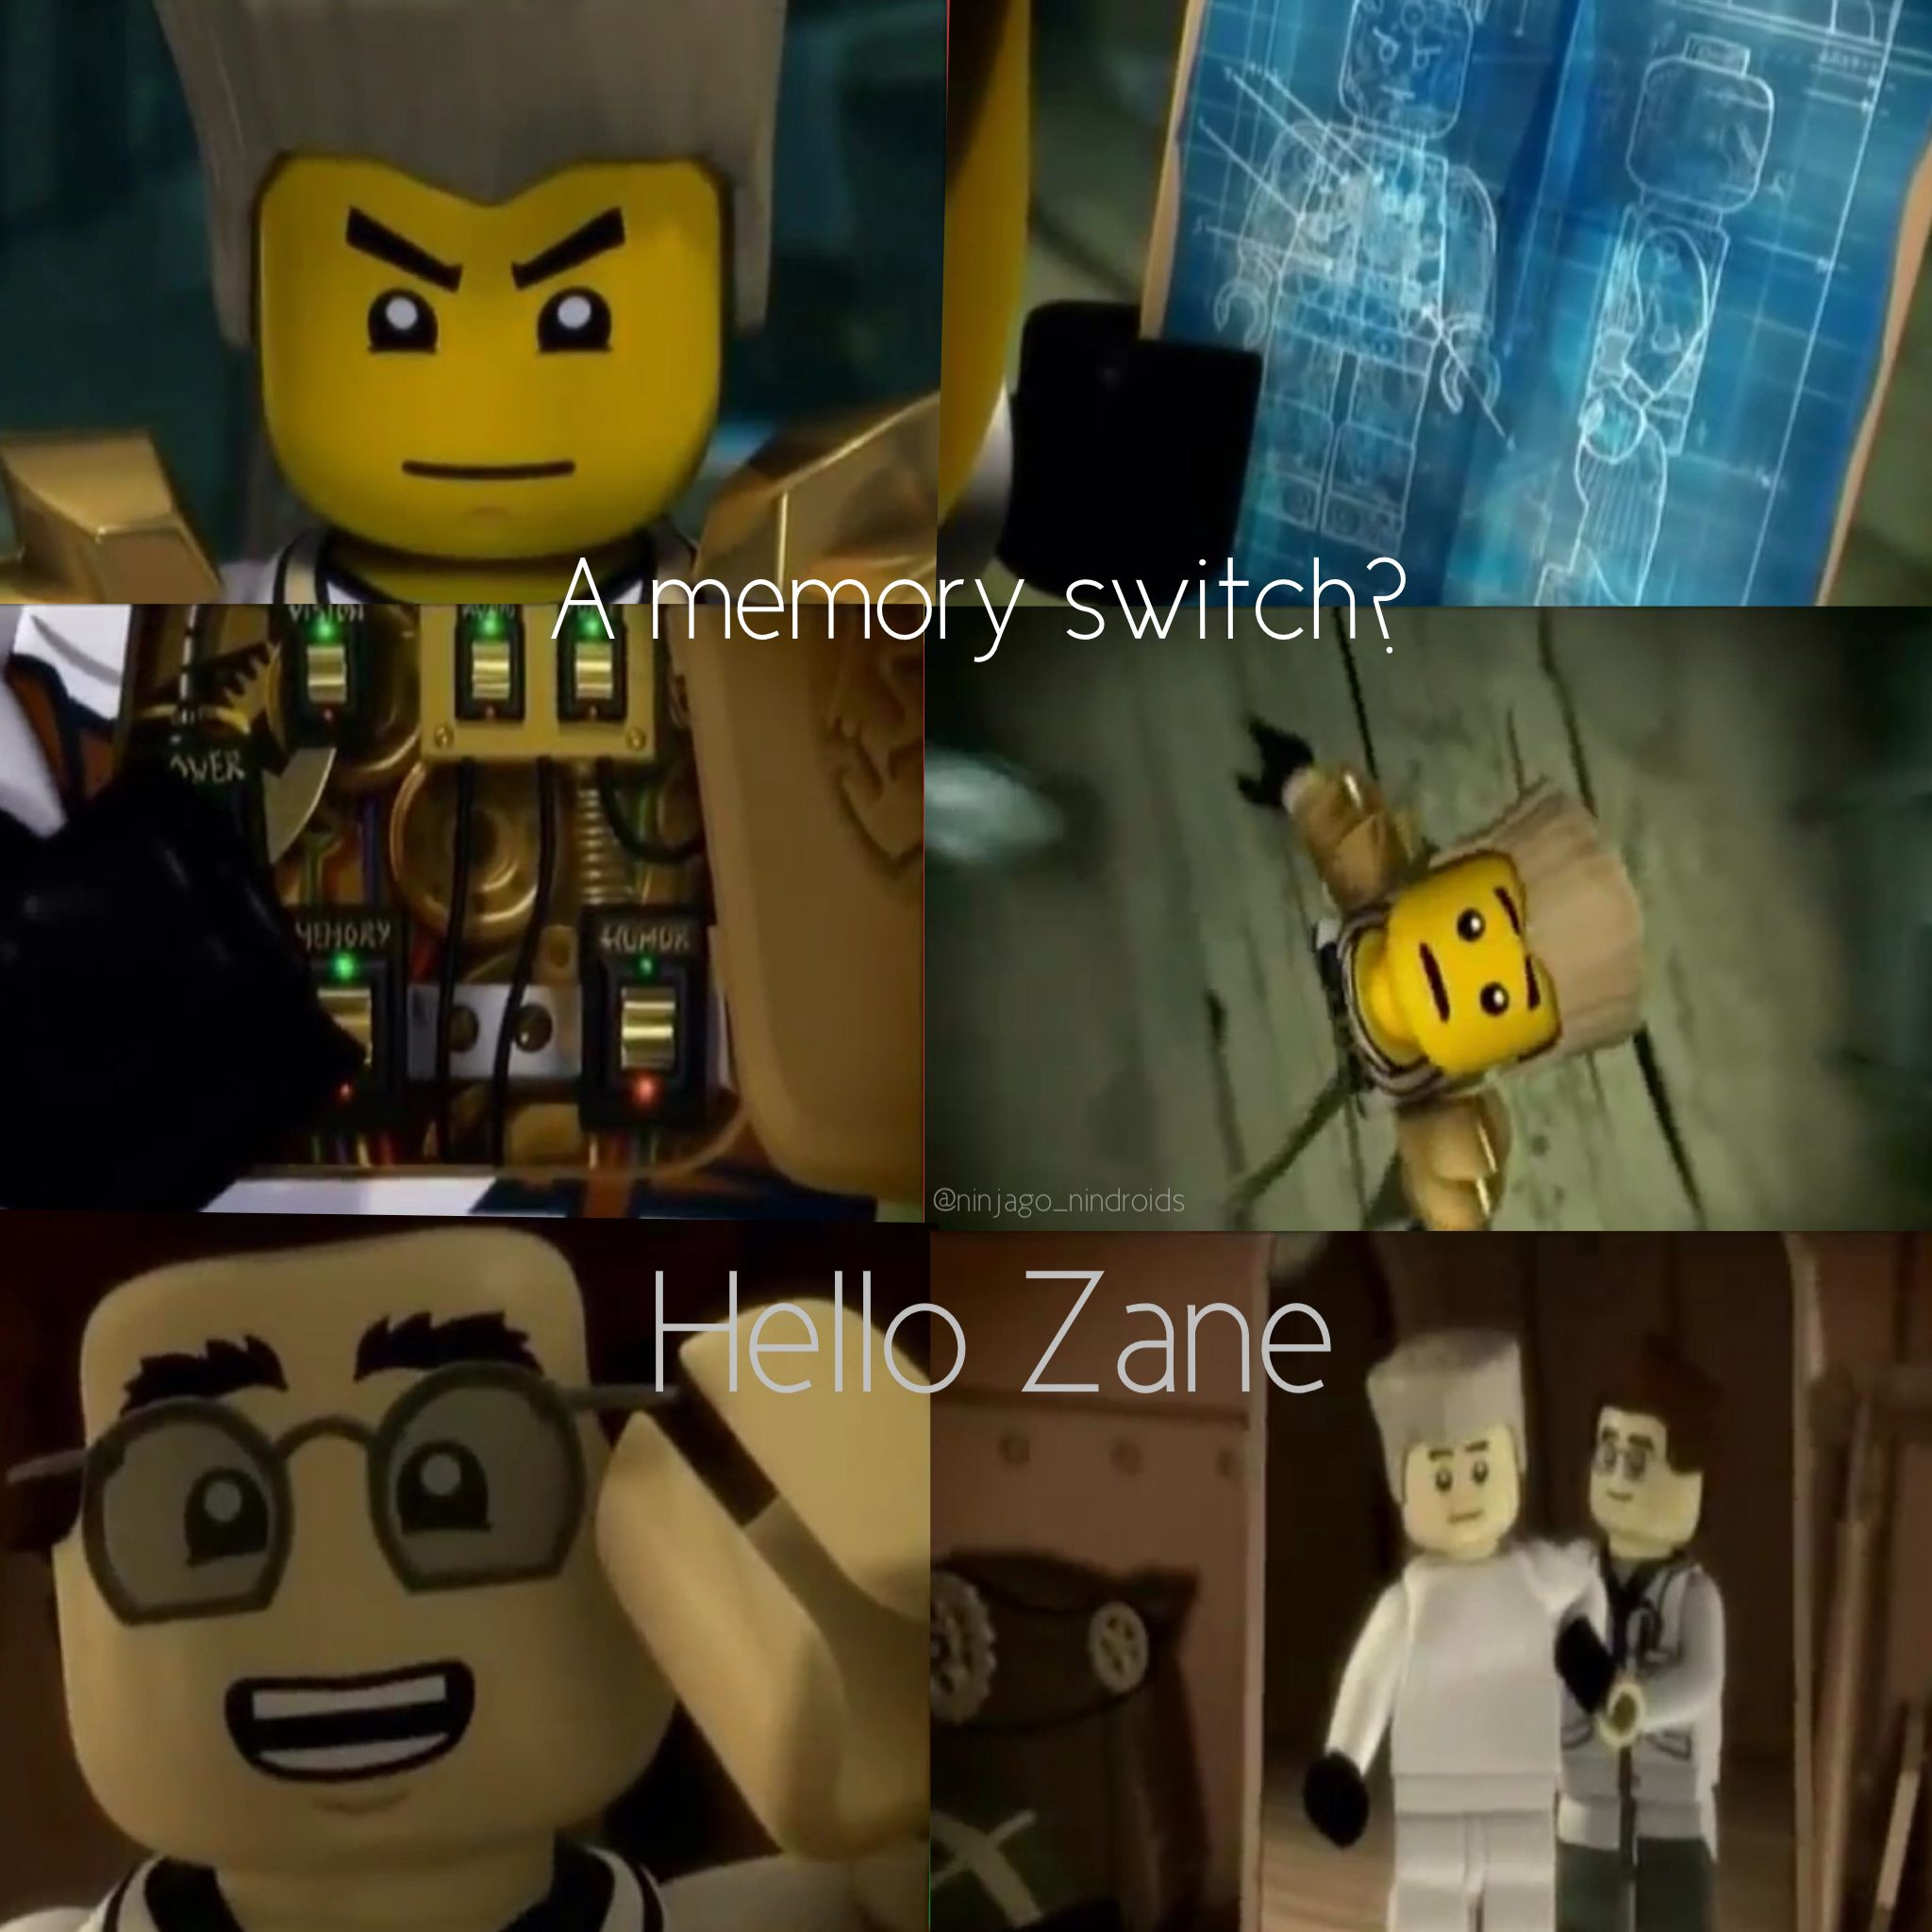 I love this scene. Especially when Zane was holding the